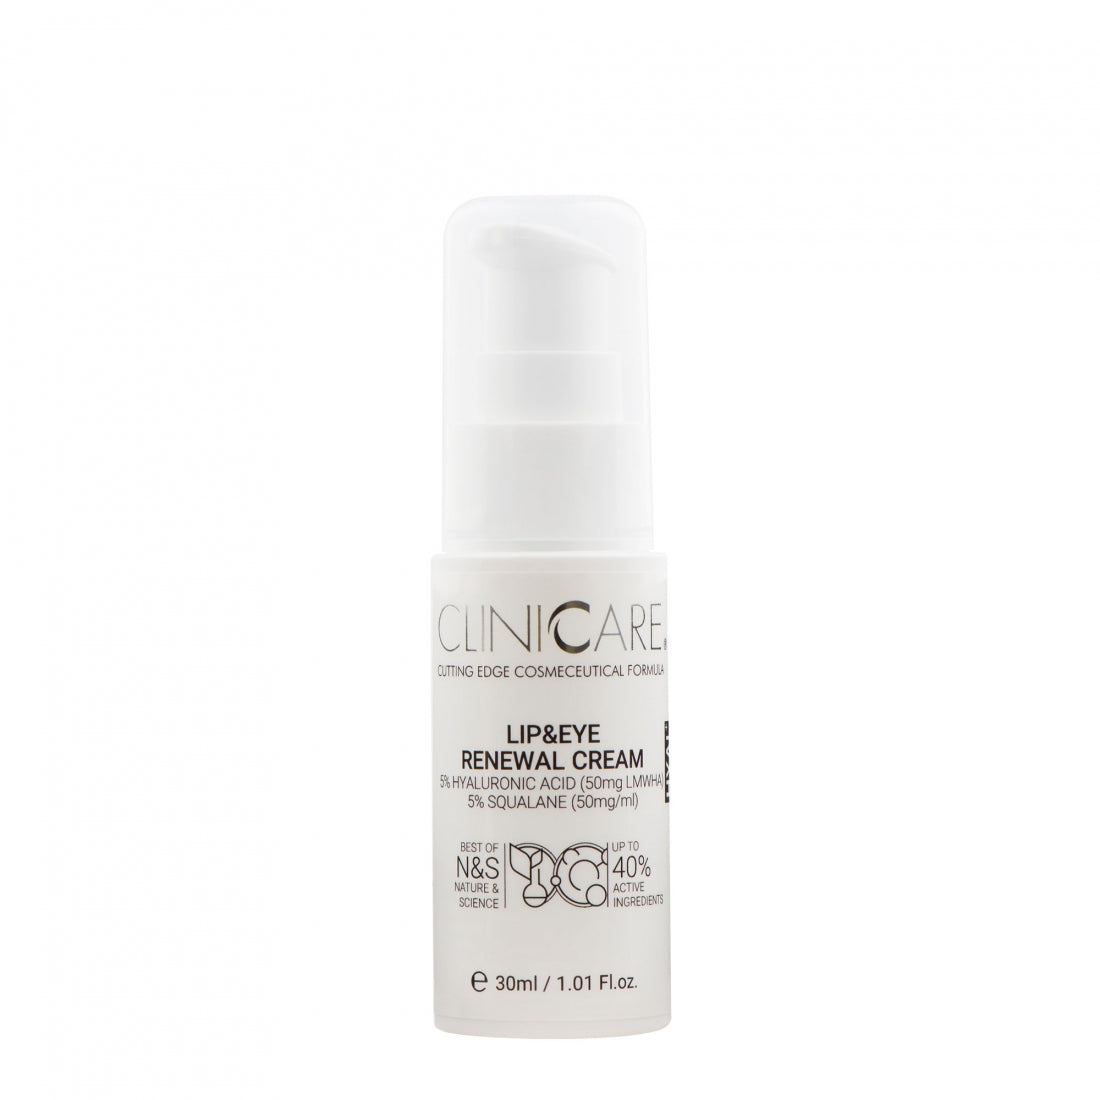 Lip and Eye renewal cream